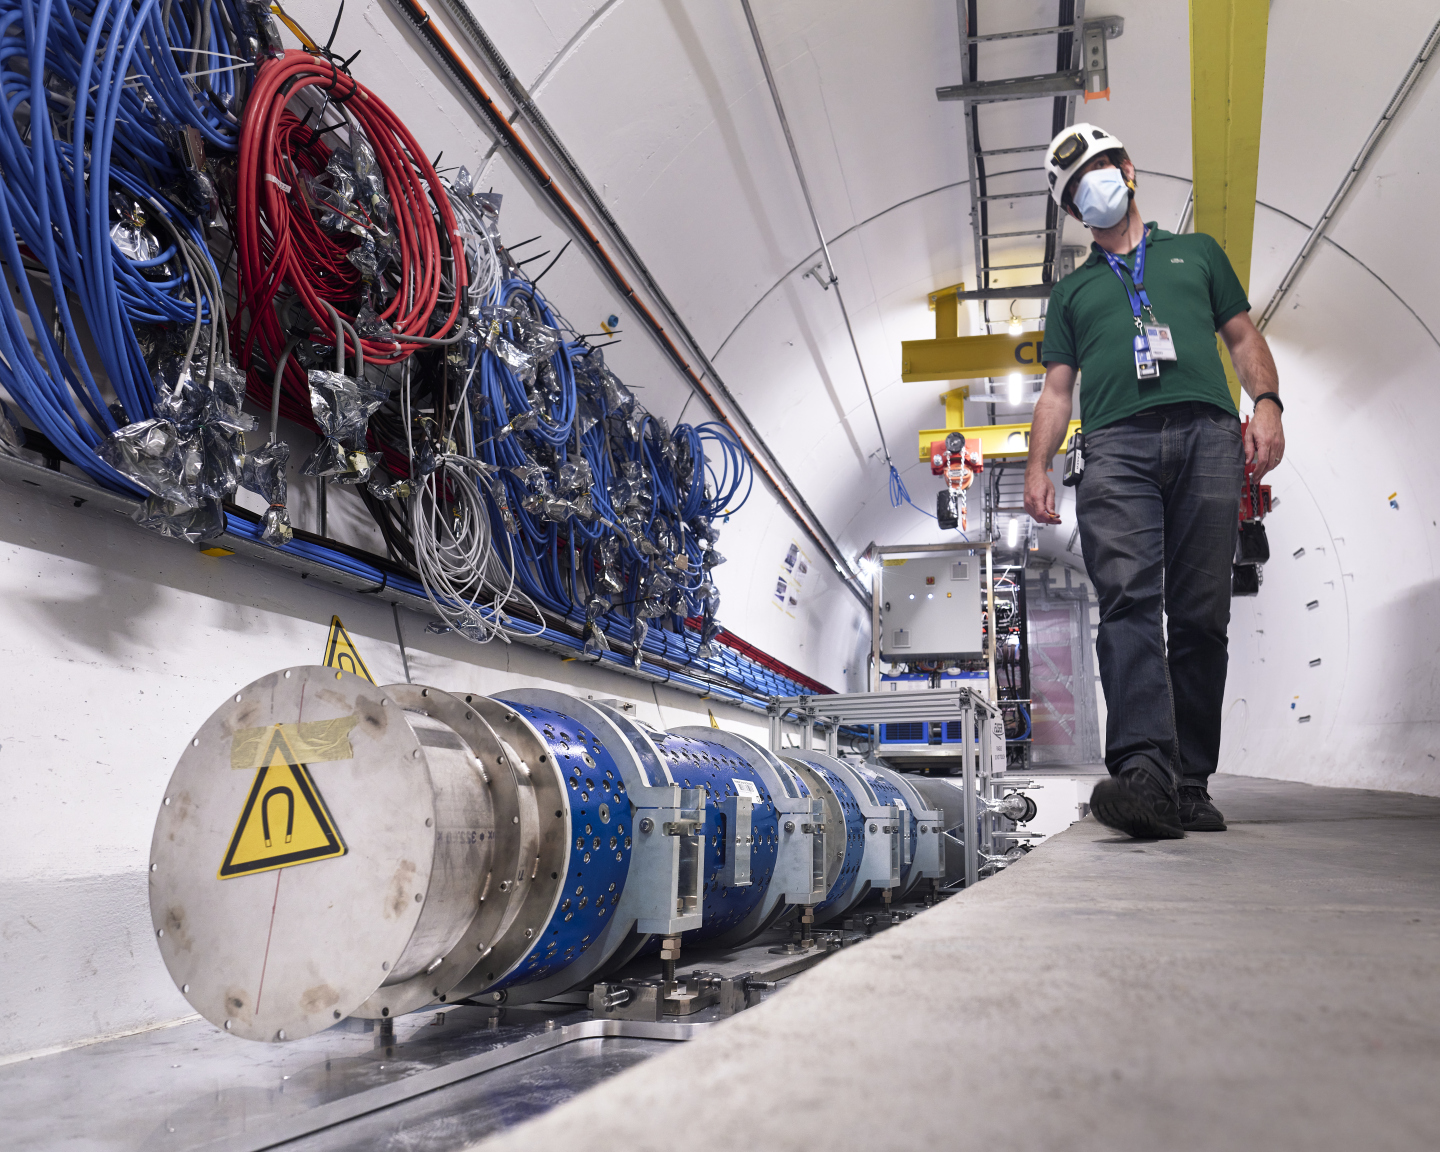 First phase of installation of FASER in the LHC tunnel